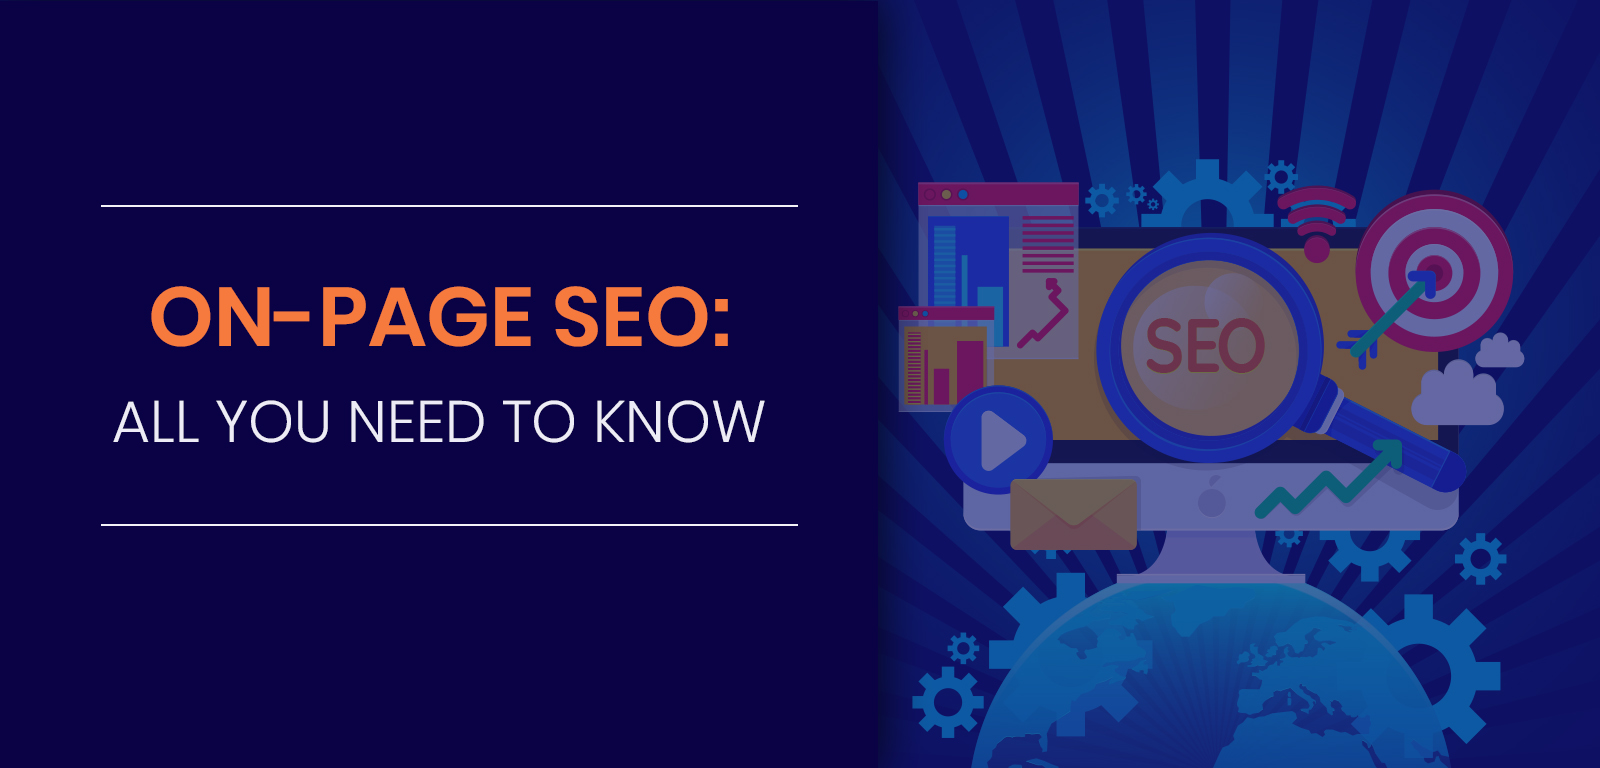 ON-PAGE SEO: All you need to know